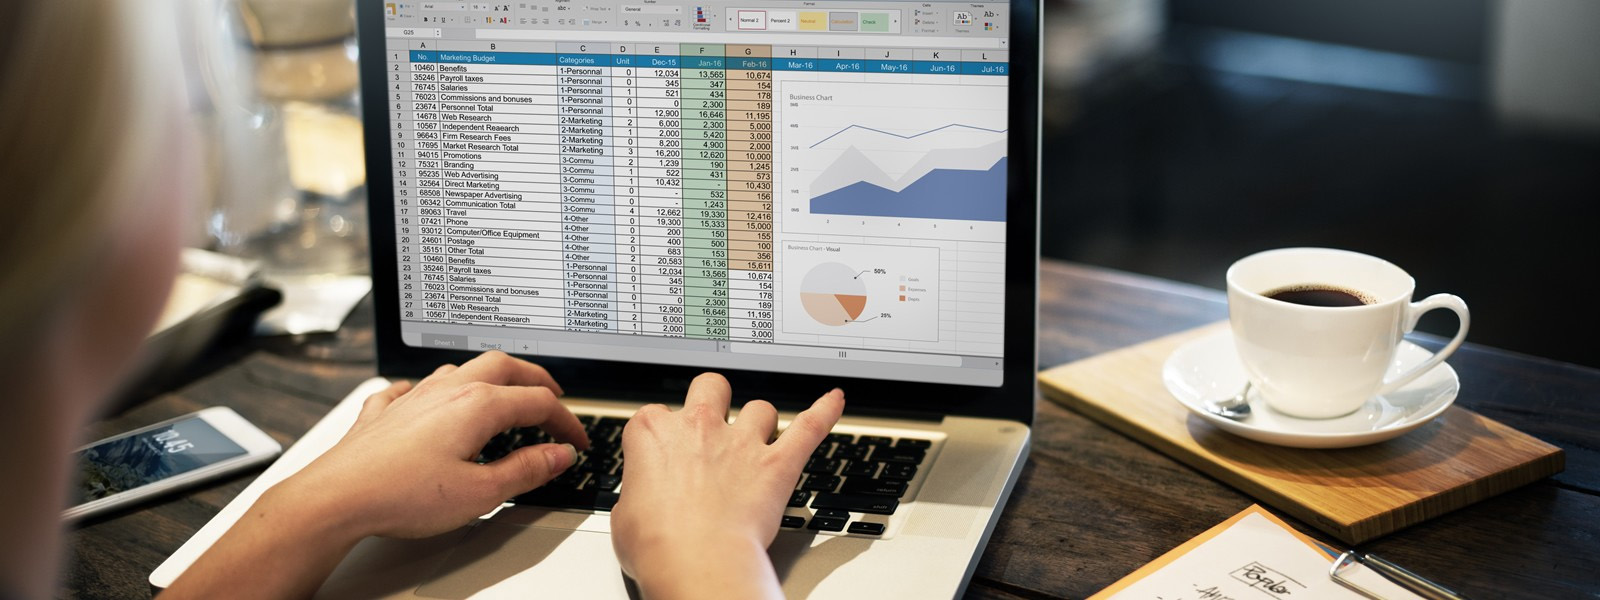 Two hands on laptop with Excel table on screen and cup of coffee to the right